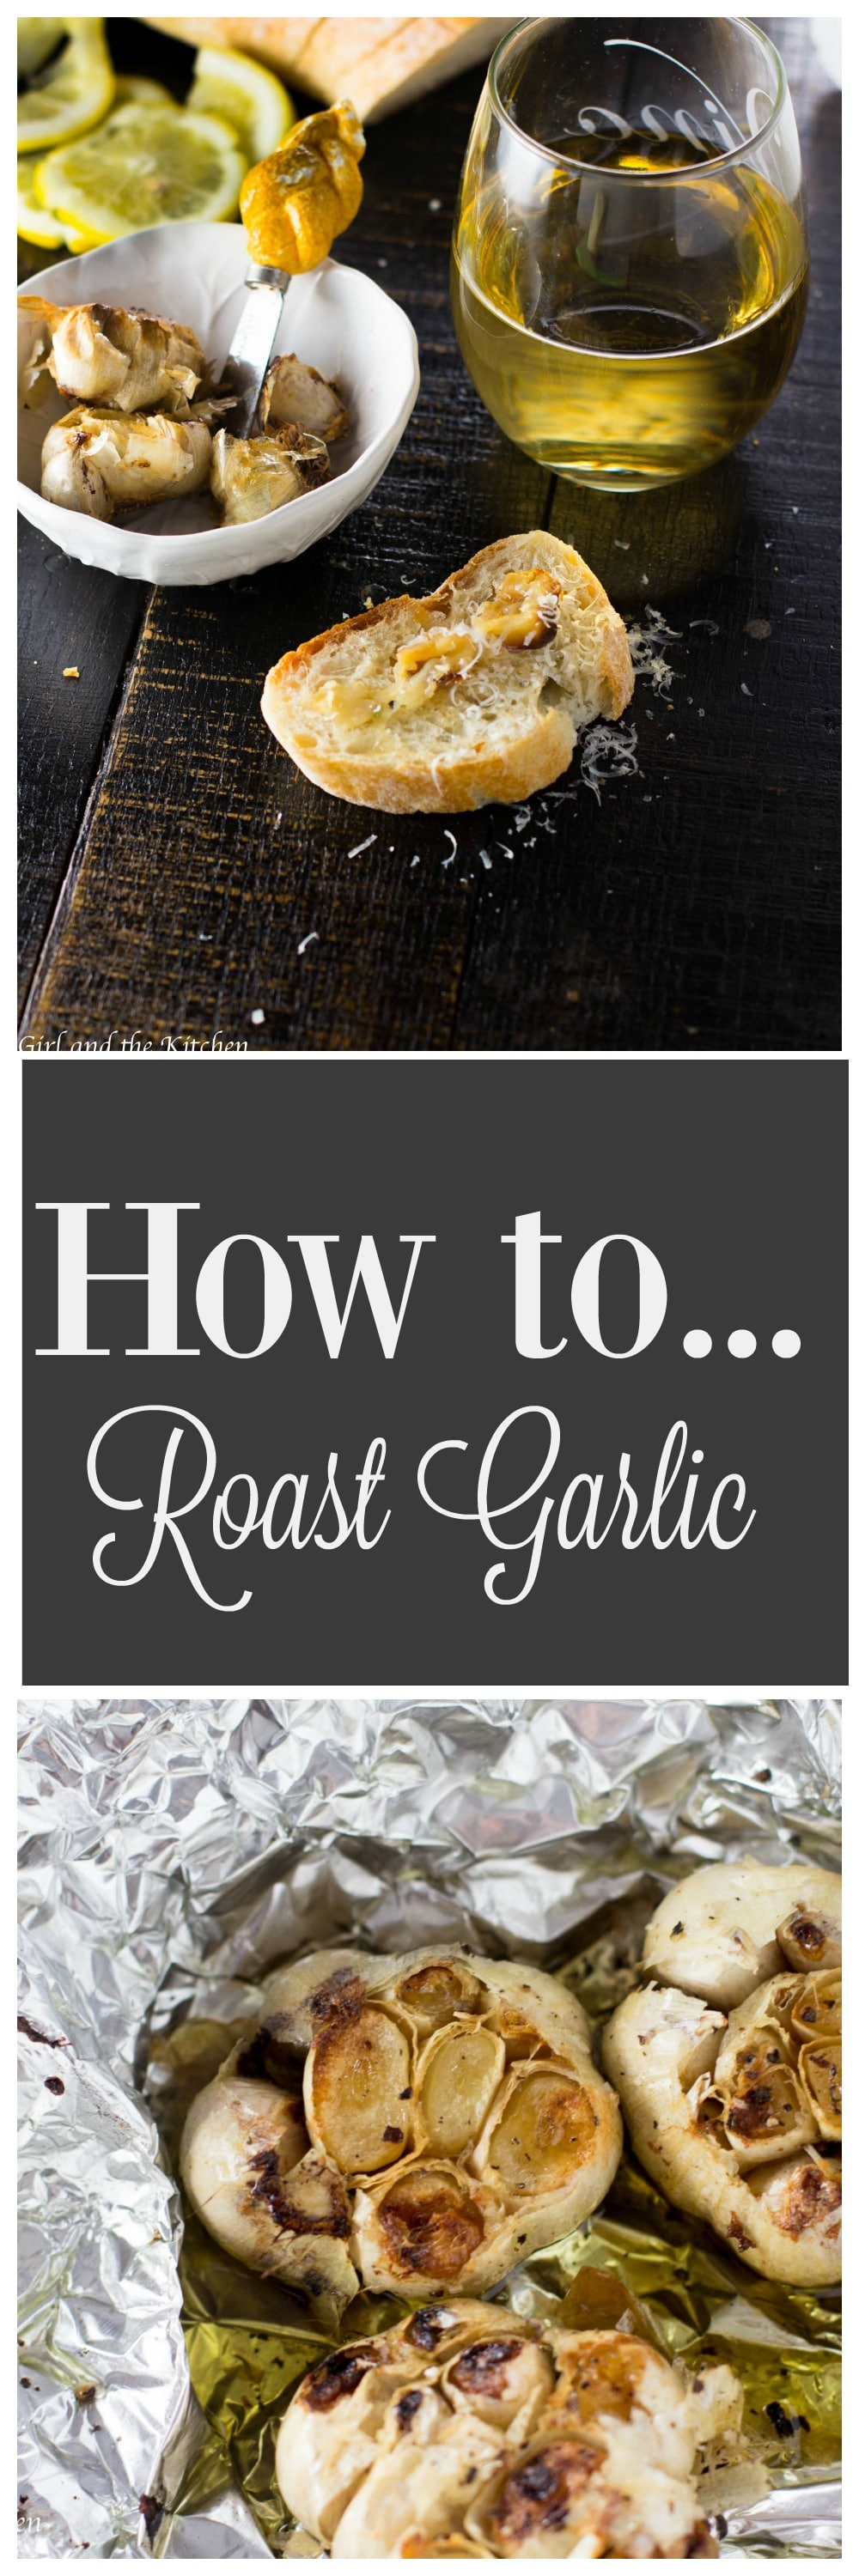 id you know that there is a secret to restaurant dishes? Yes I mean other than butter. It's roast garlic. And the beauty is that it's super easy to make